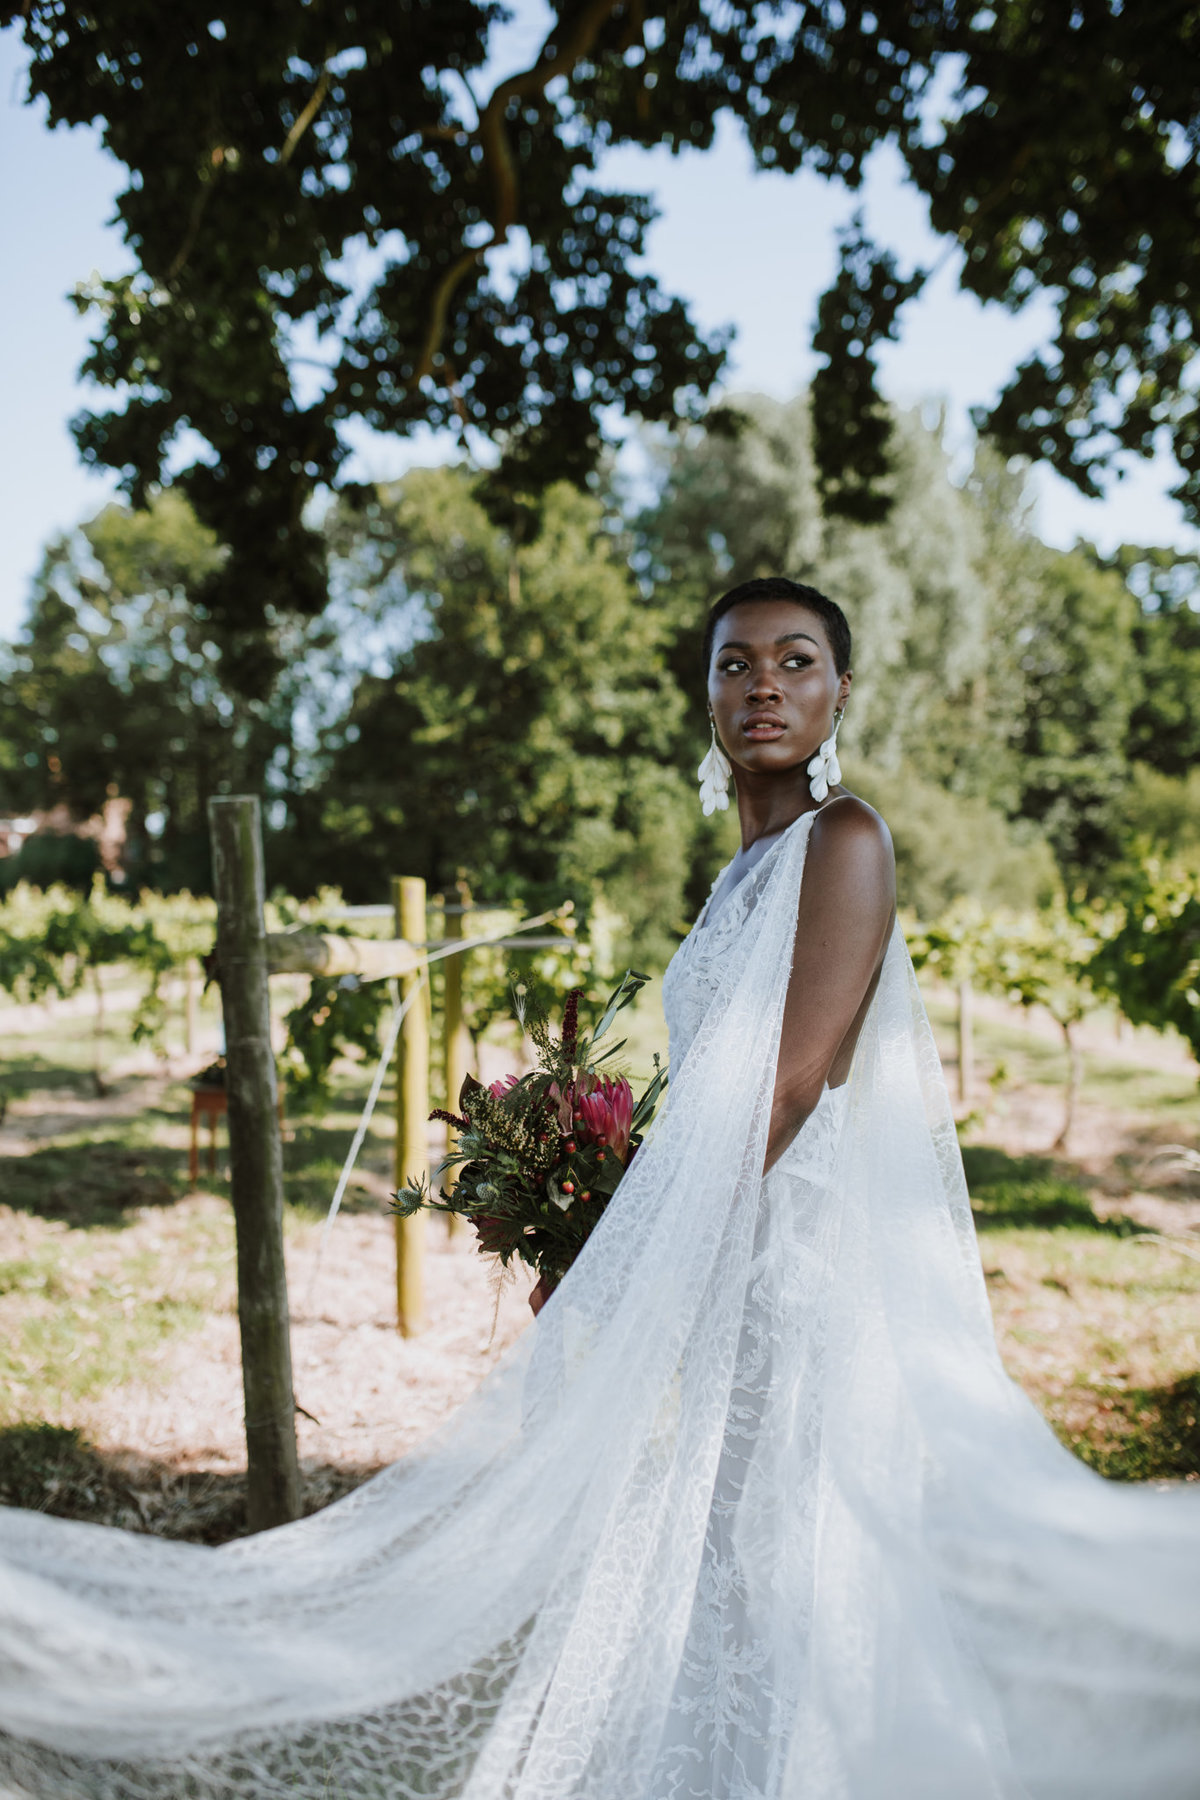 The Stars Inside - Vineyard Destination Wedding - Laura Martha Photography (114)